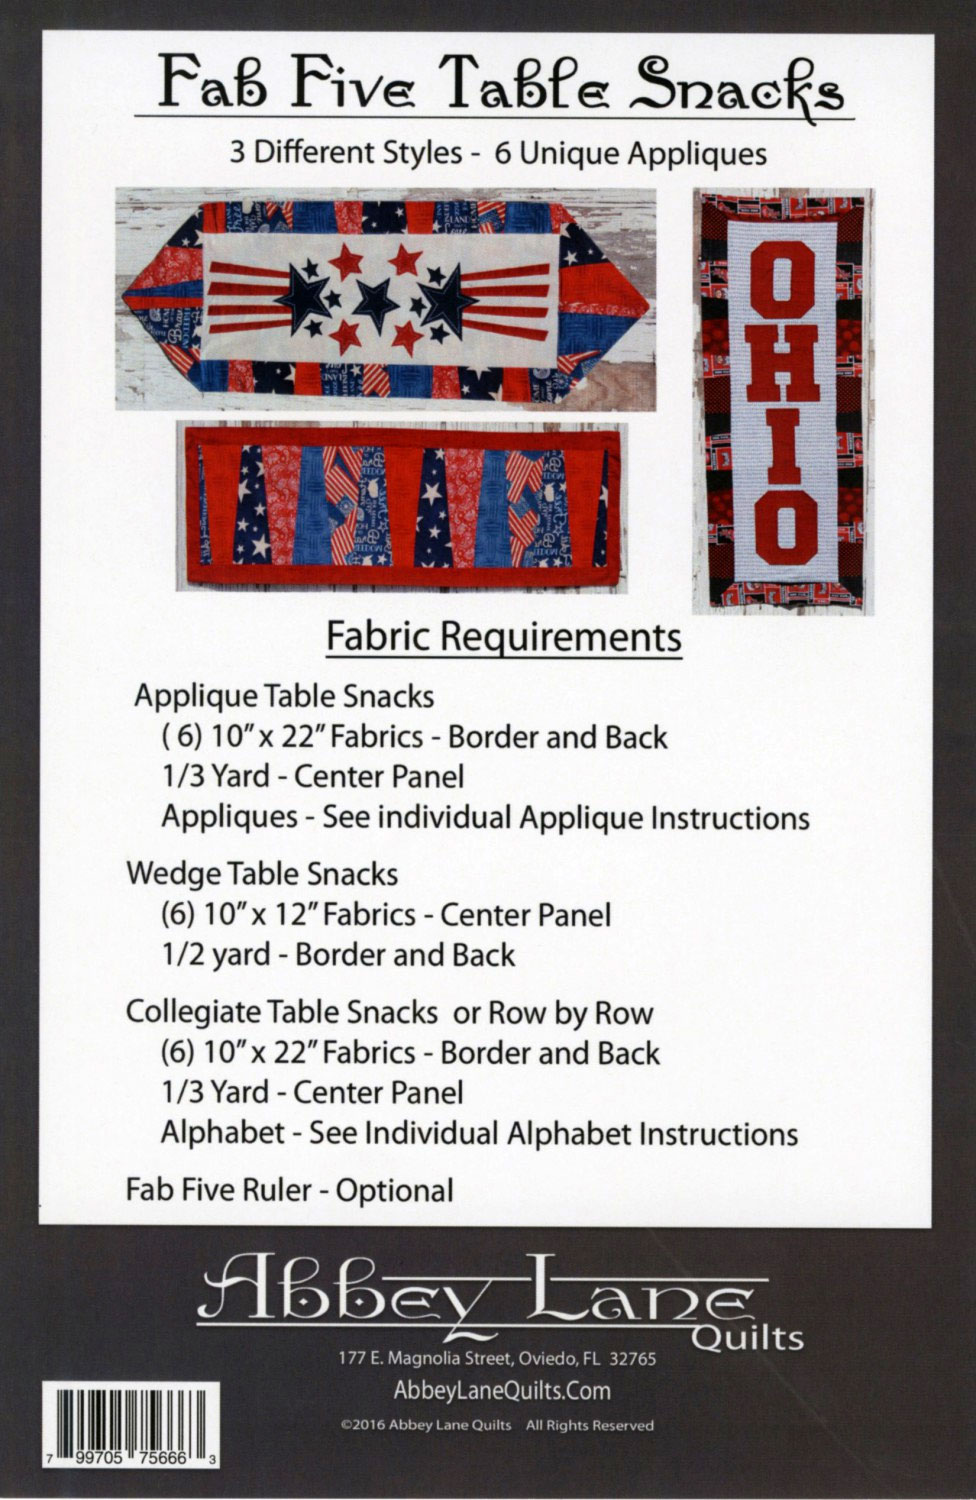 Fab-Five-Table-Snacks-sewing-pattern-Abby-Lane-Quilts-back